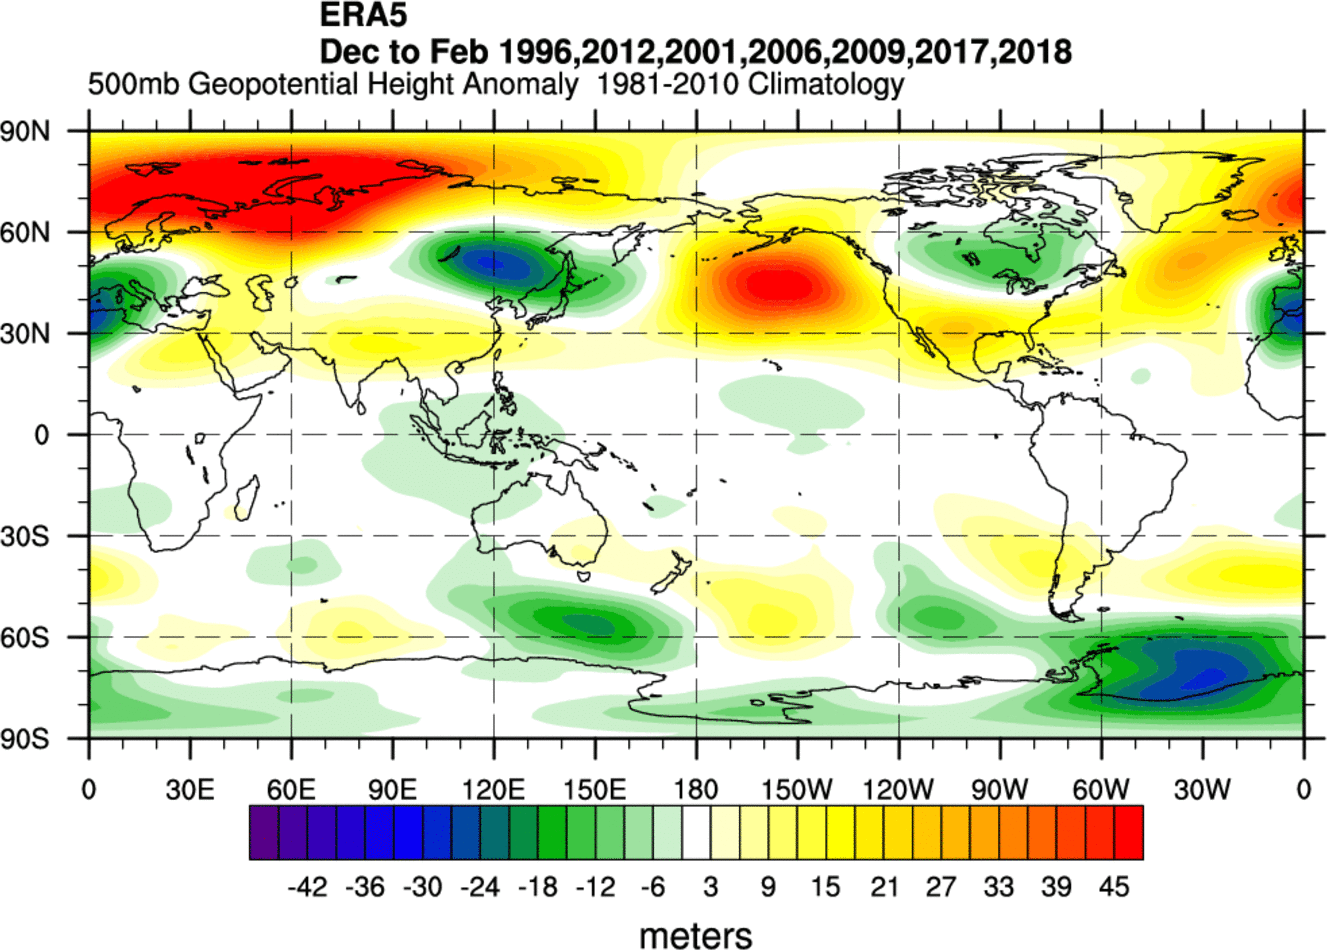 Winter Forecast 2020 2021 Final Look At Winter Reveals A Strong La Nina Influence As The Ocean Now Takes The Atmosphere Head On In The New Season